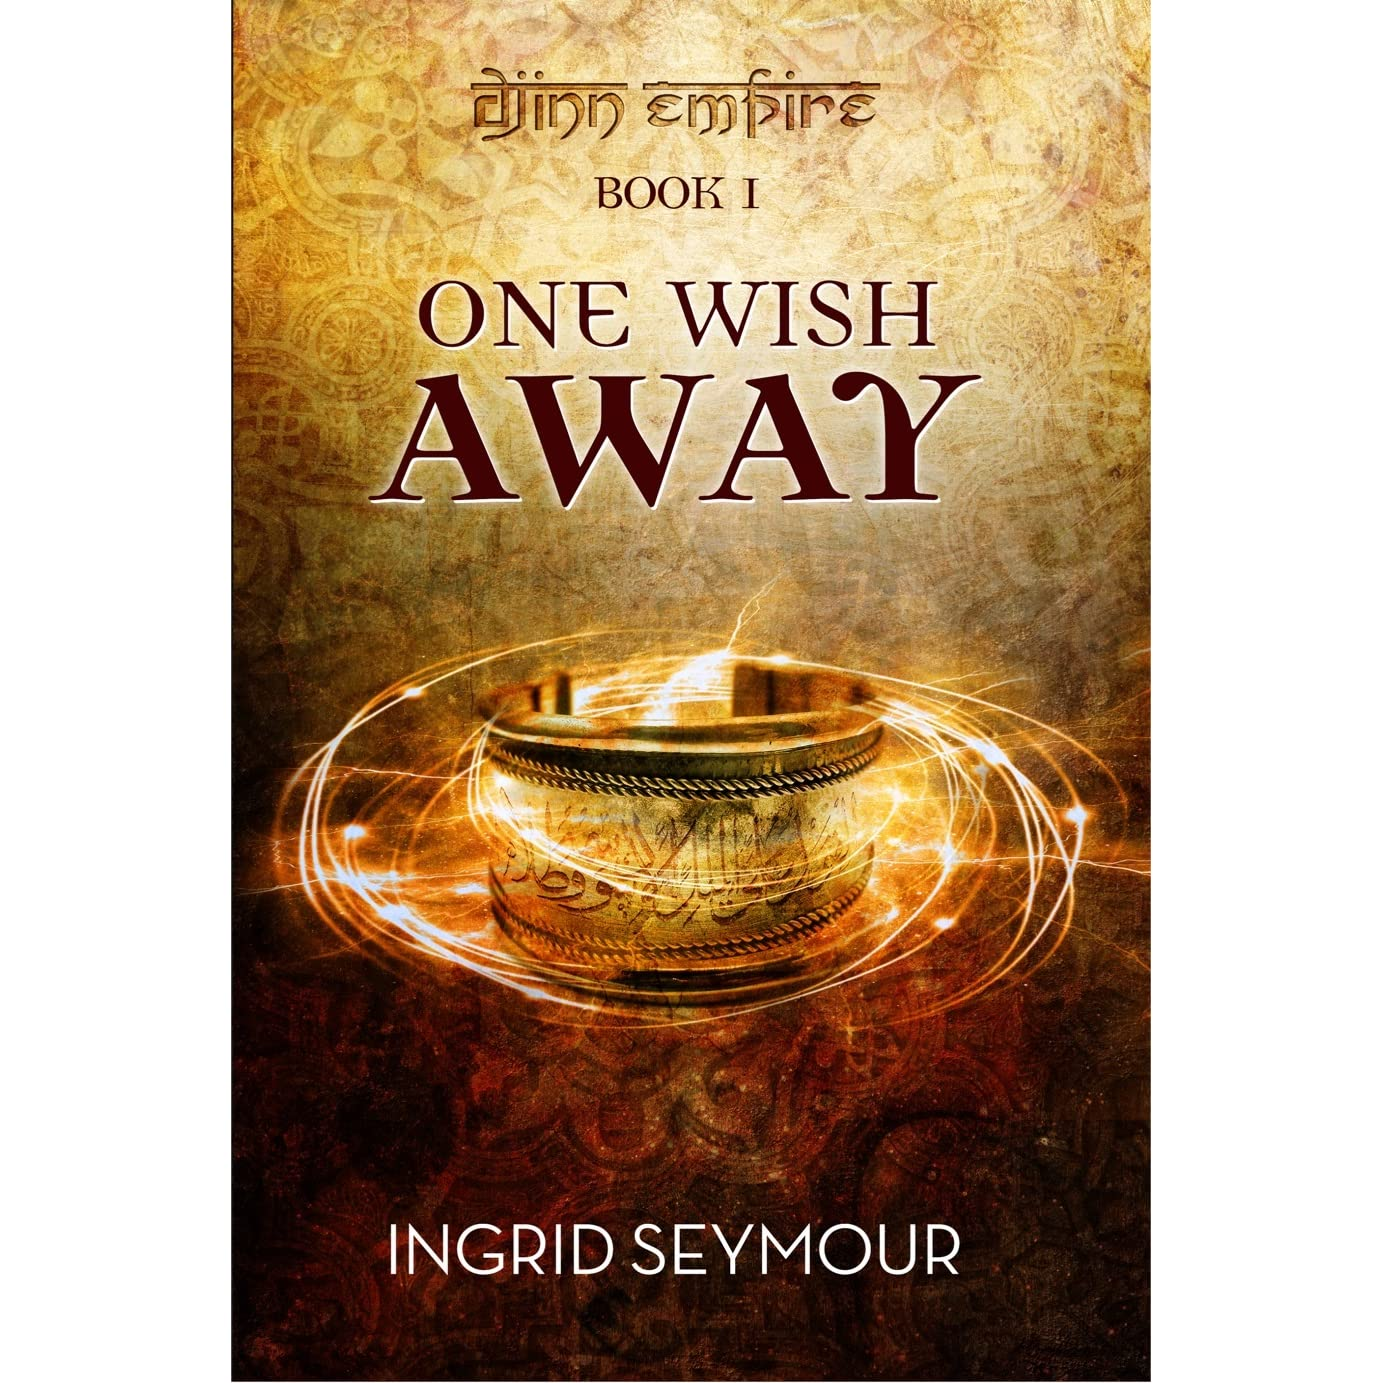 Image result for One Wish Away: Djinn Empire